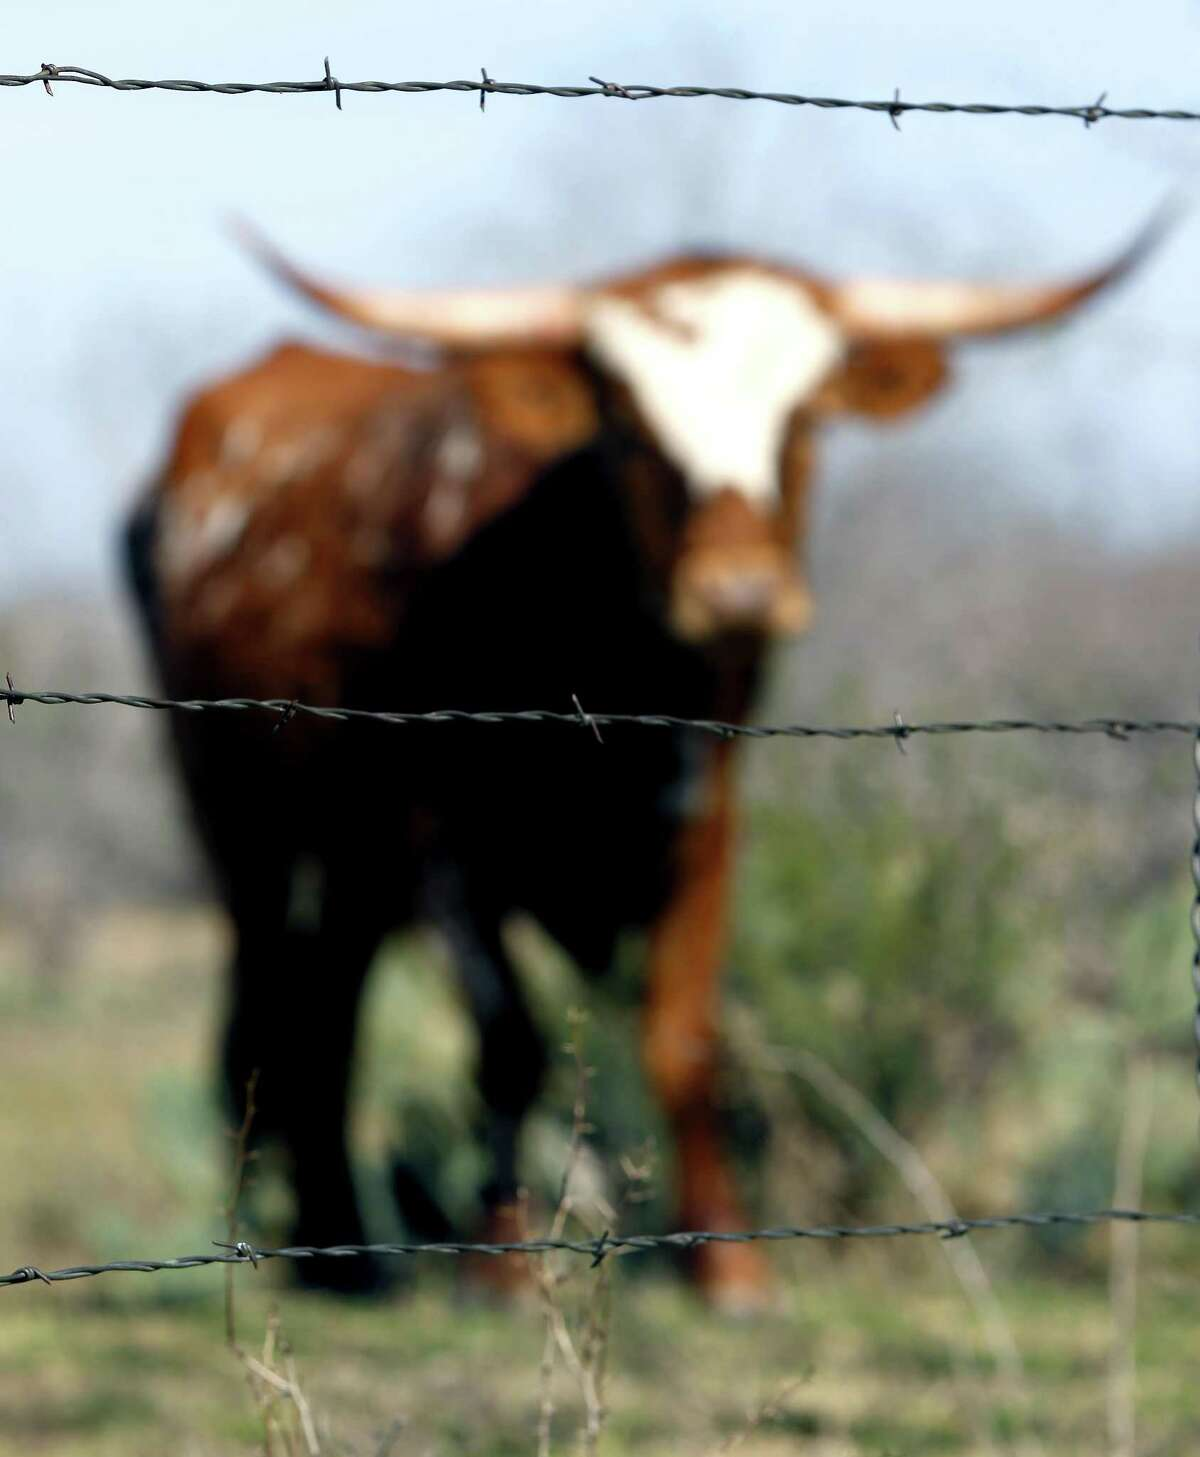 A barbed wire fence separates cattle from the road in south Bexar County. Coupled with the arrival of the railroad, barbed wire closed the open range and ended the great cattle drives.